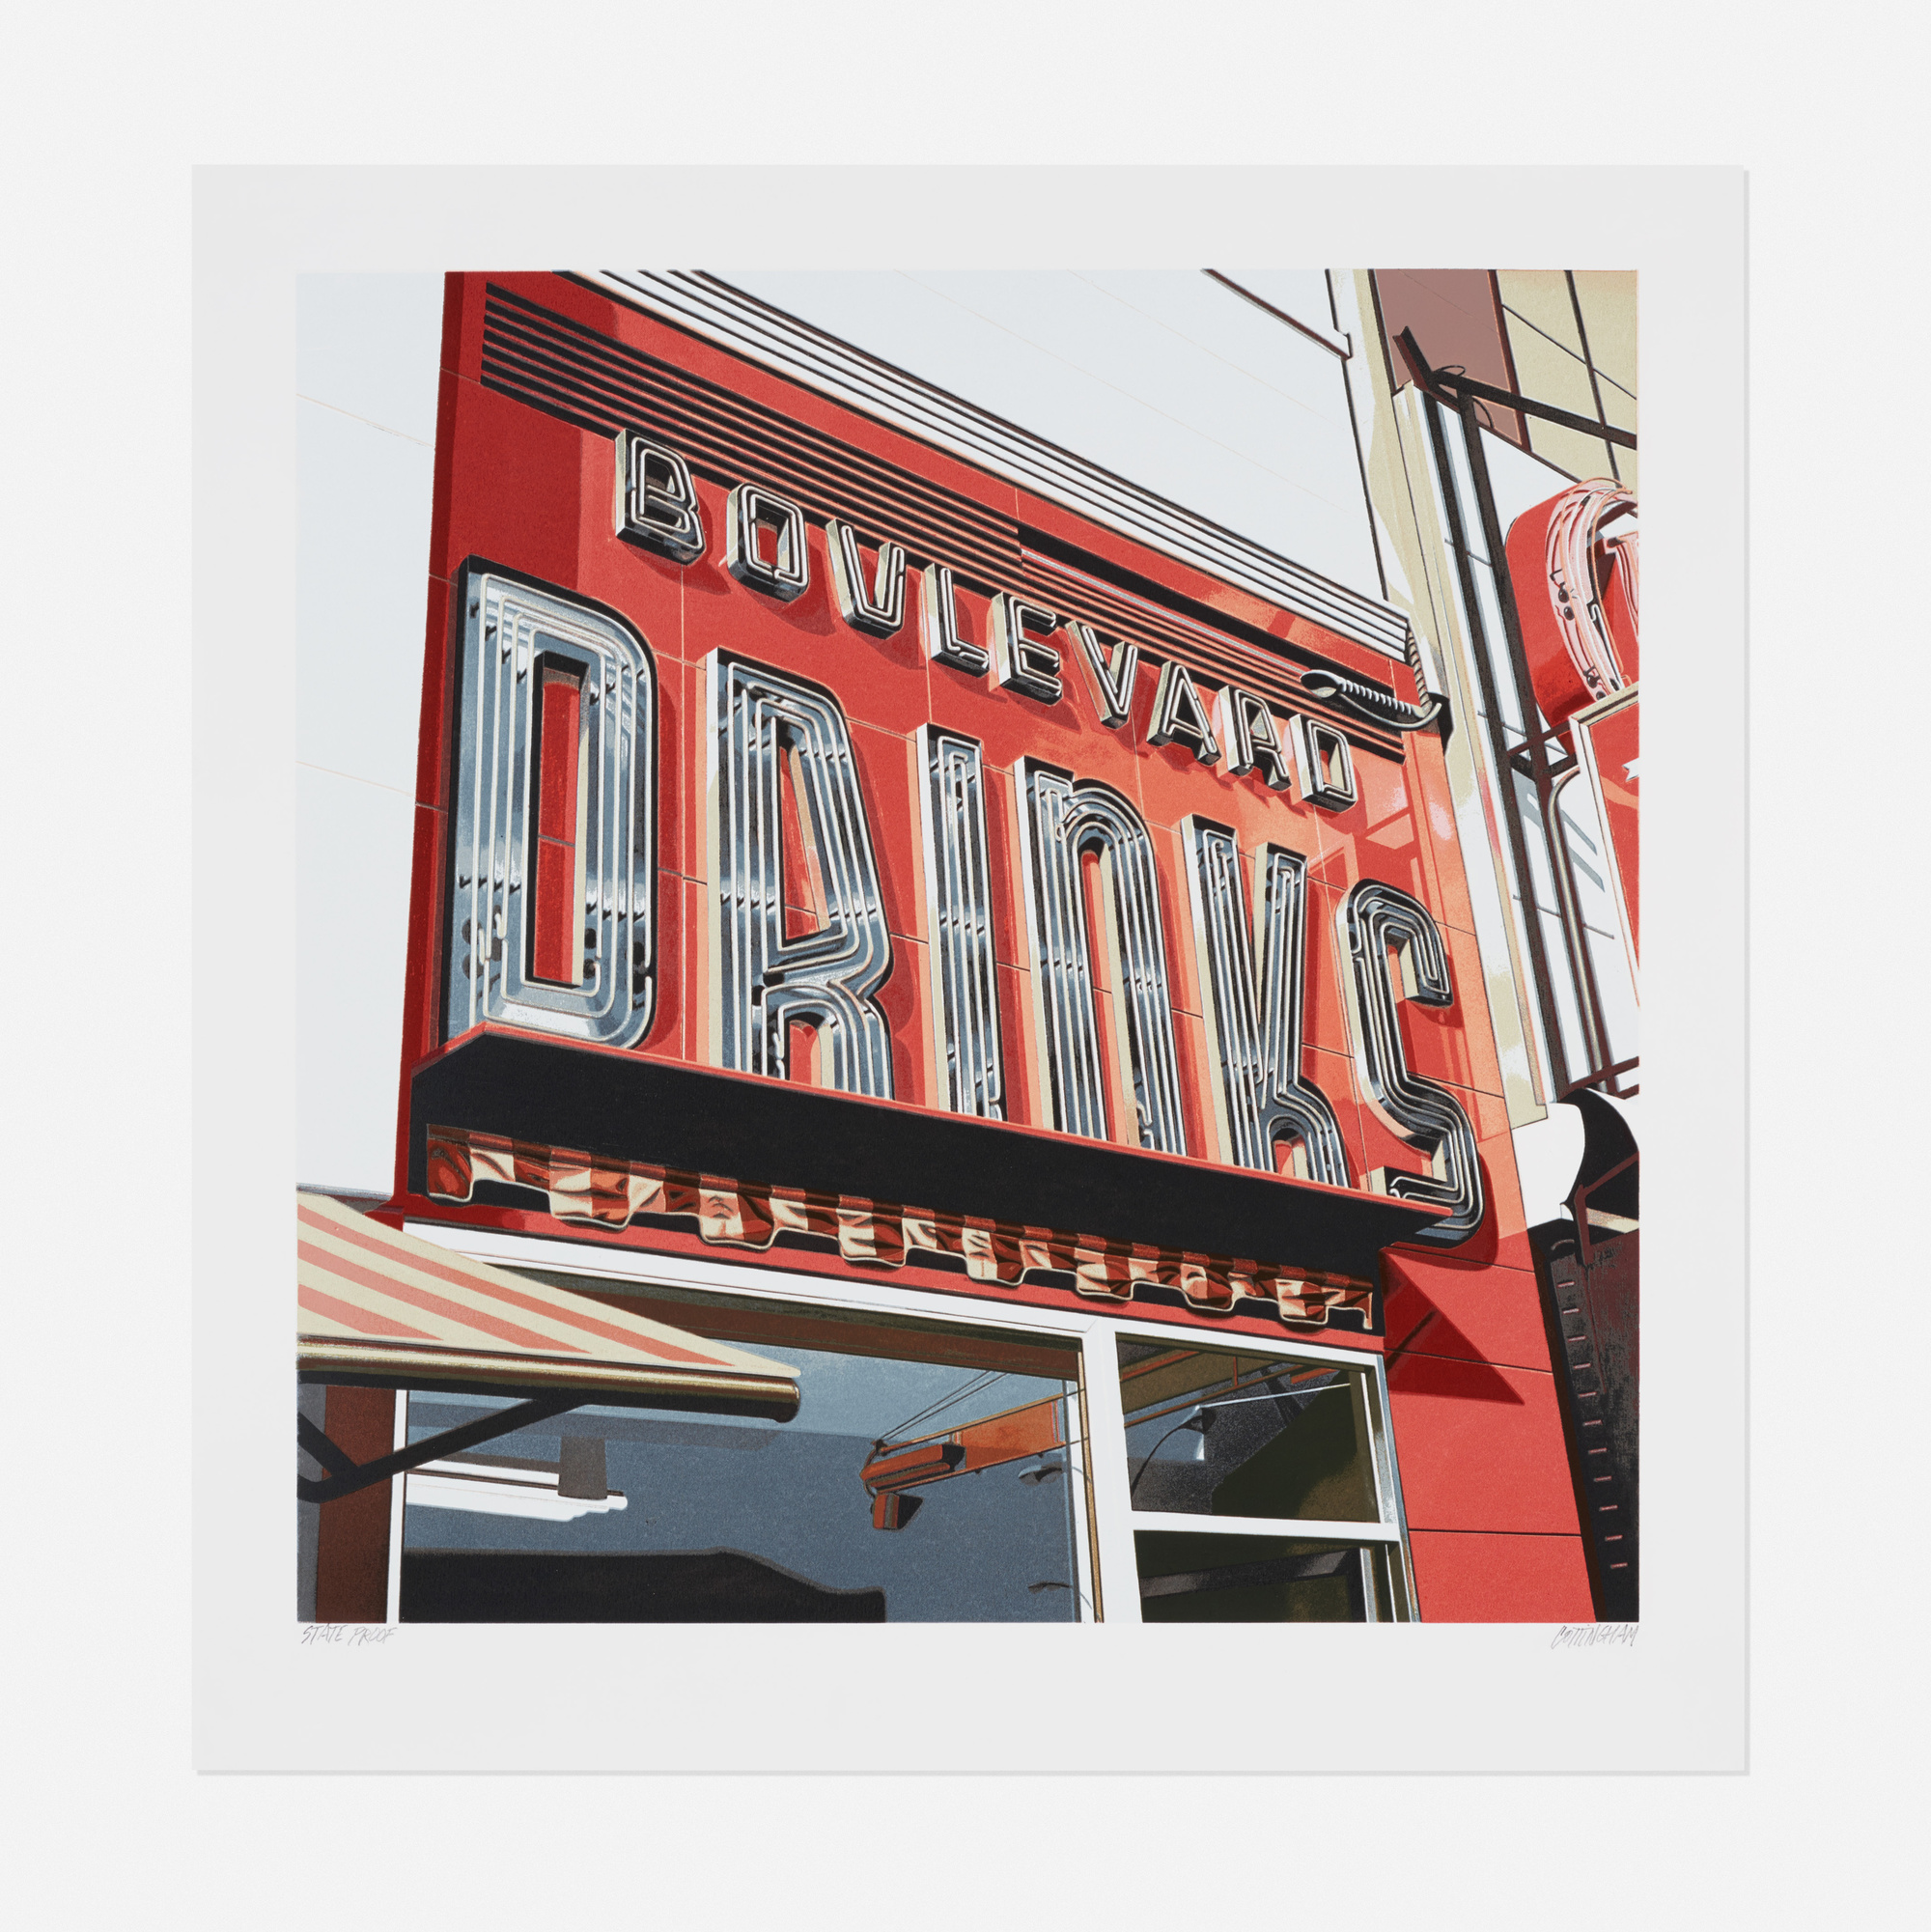 265: Robert Cottingham / Boulevard Drinks (from the American Signs portfolio) (1 of 1)